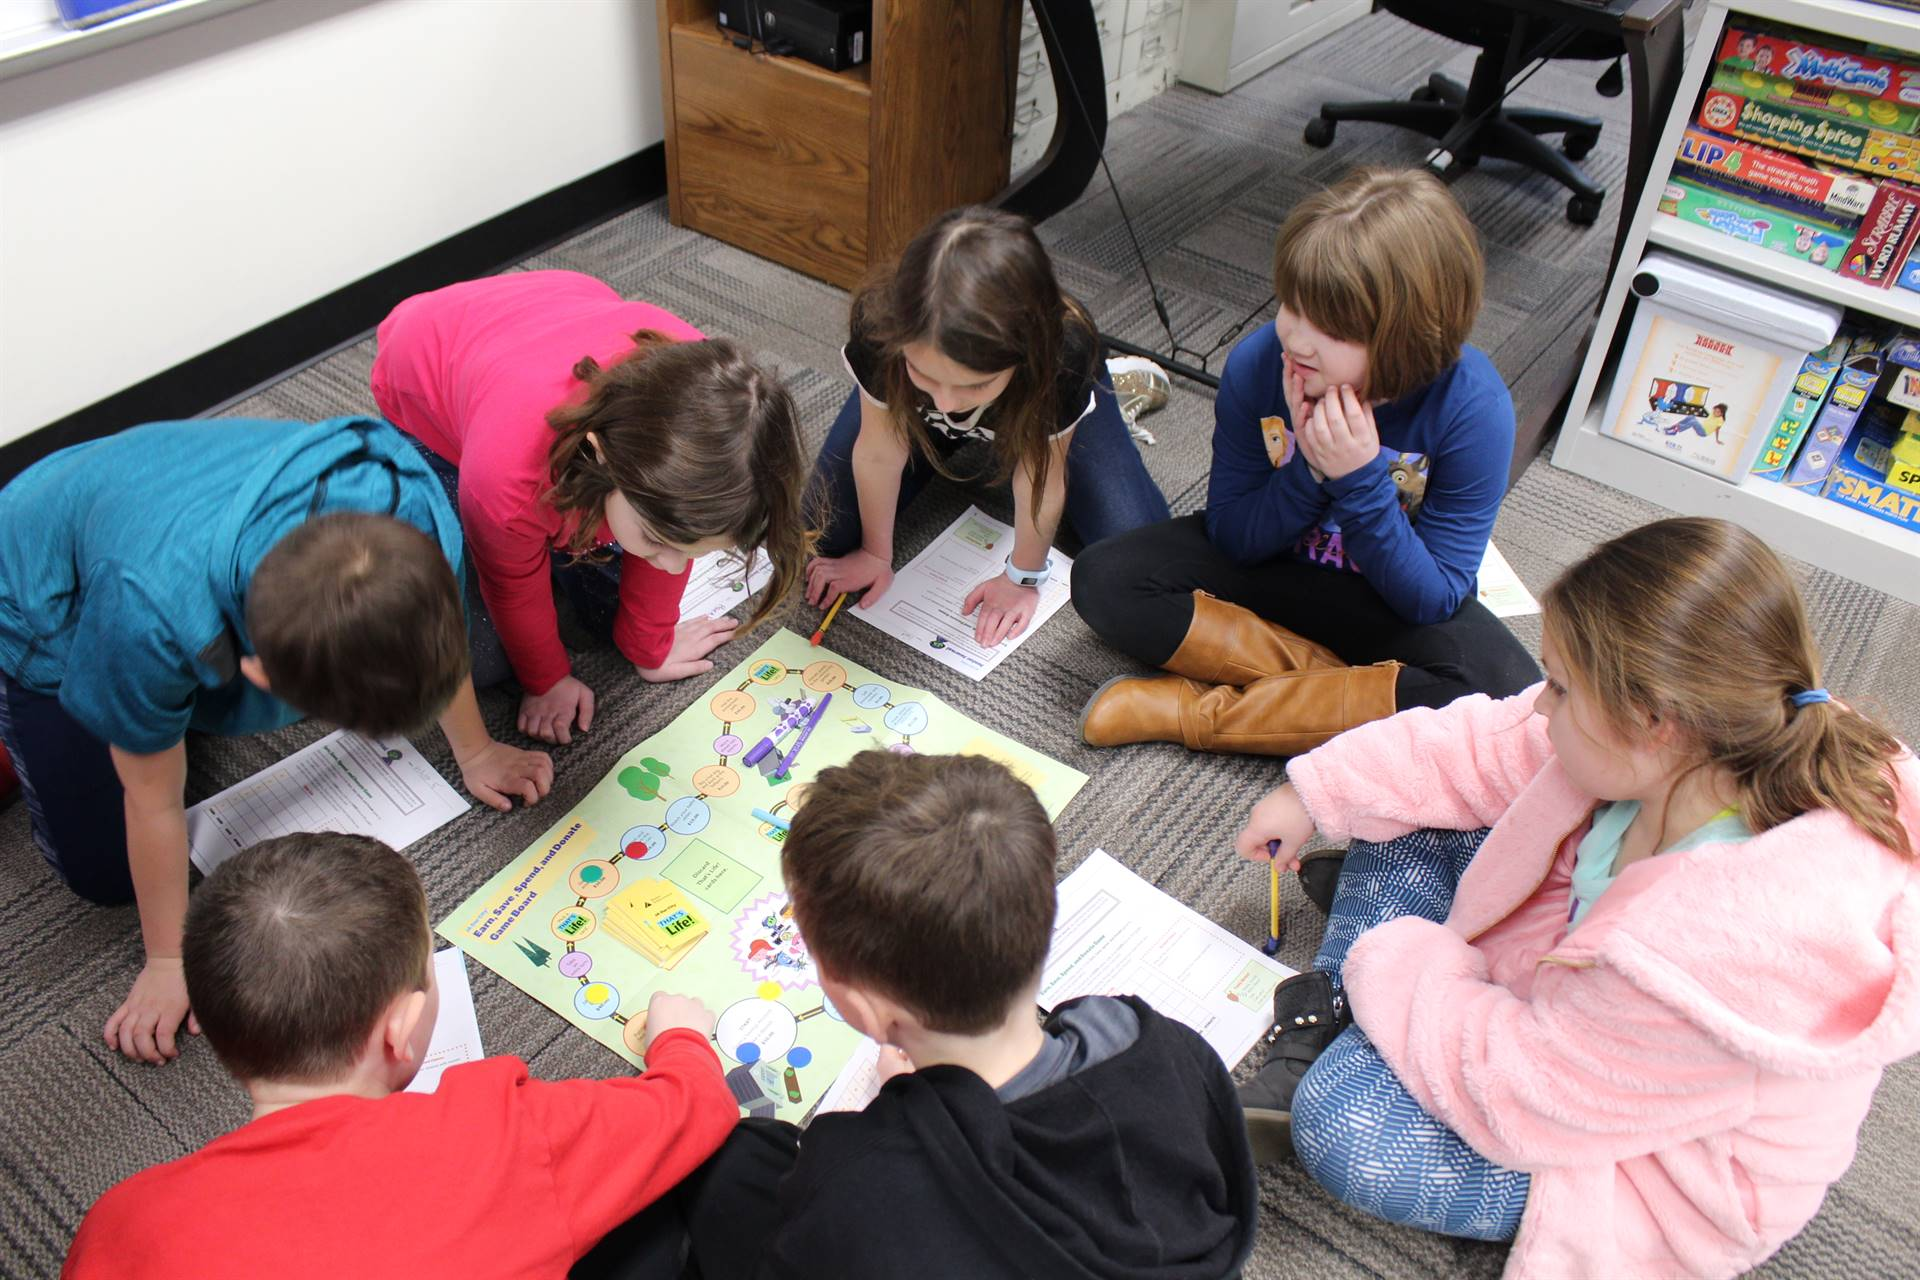 Seven students playing a game